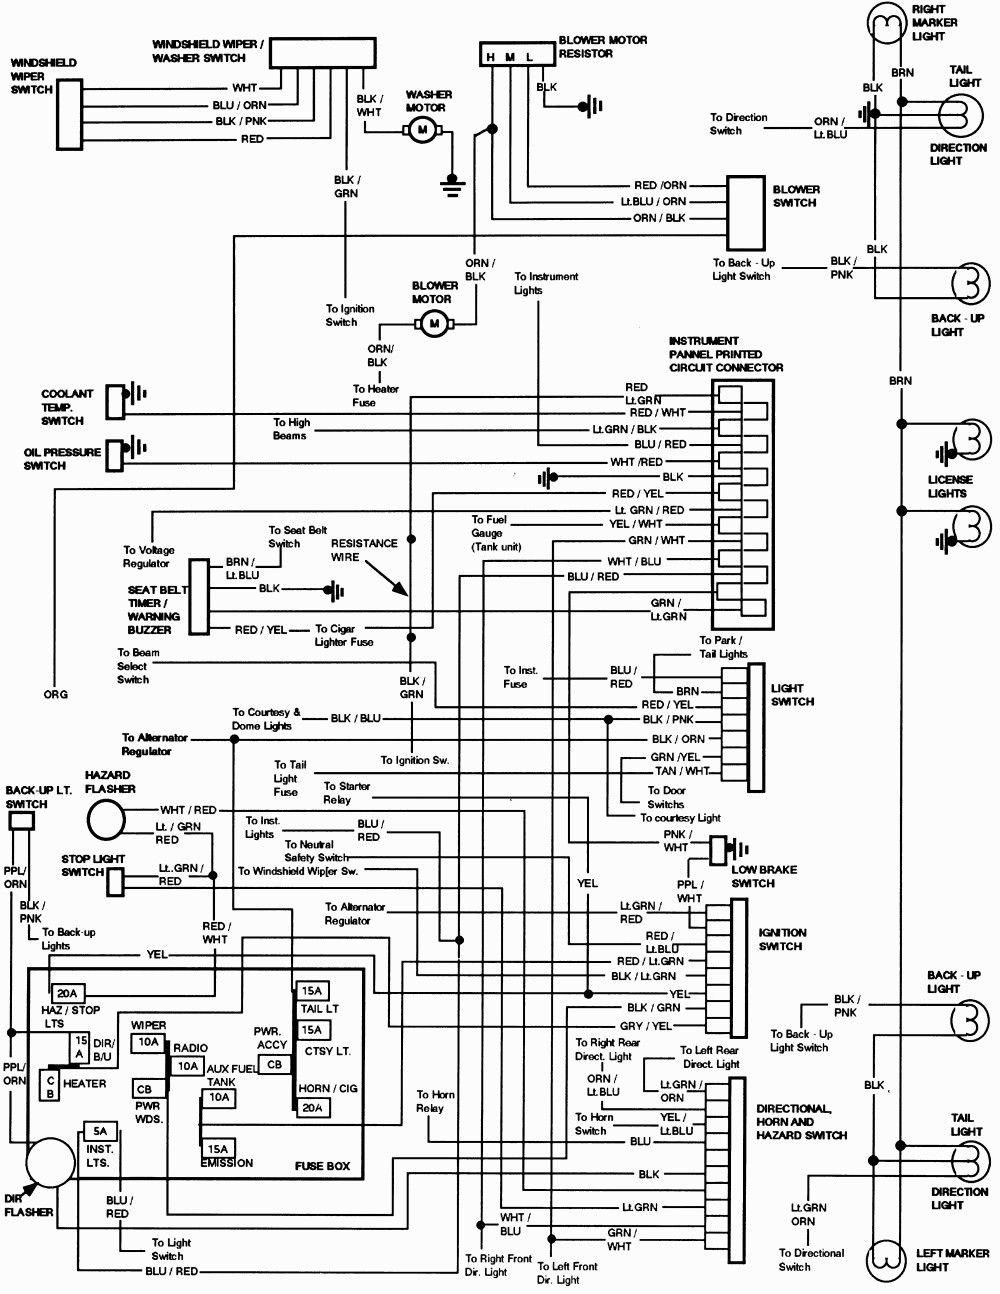 85 Ford Bronco Wiring Harness Free Download Wiring Diagram